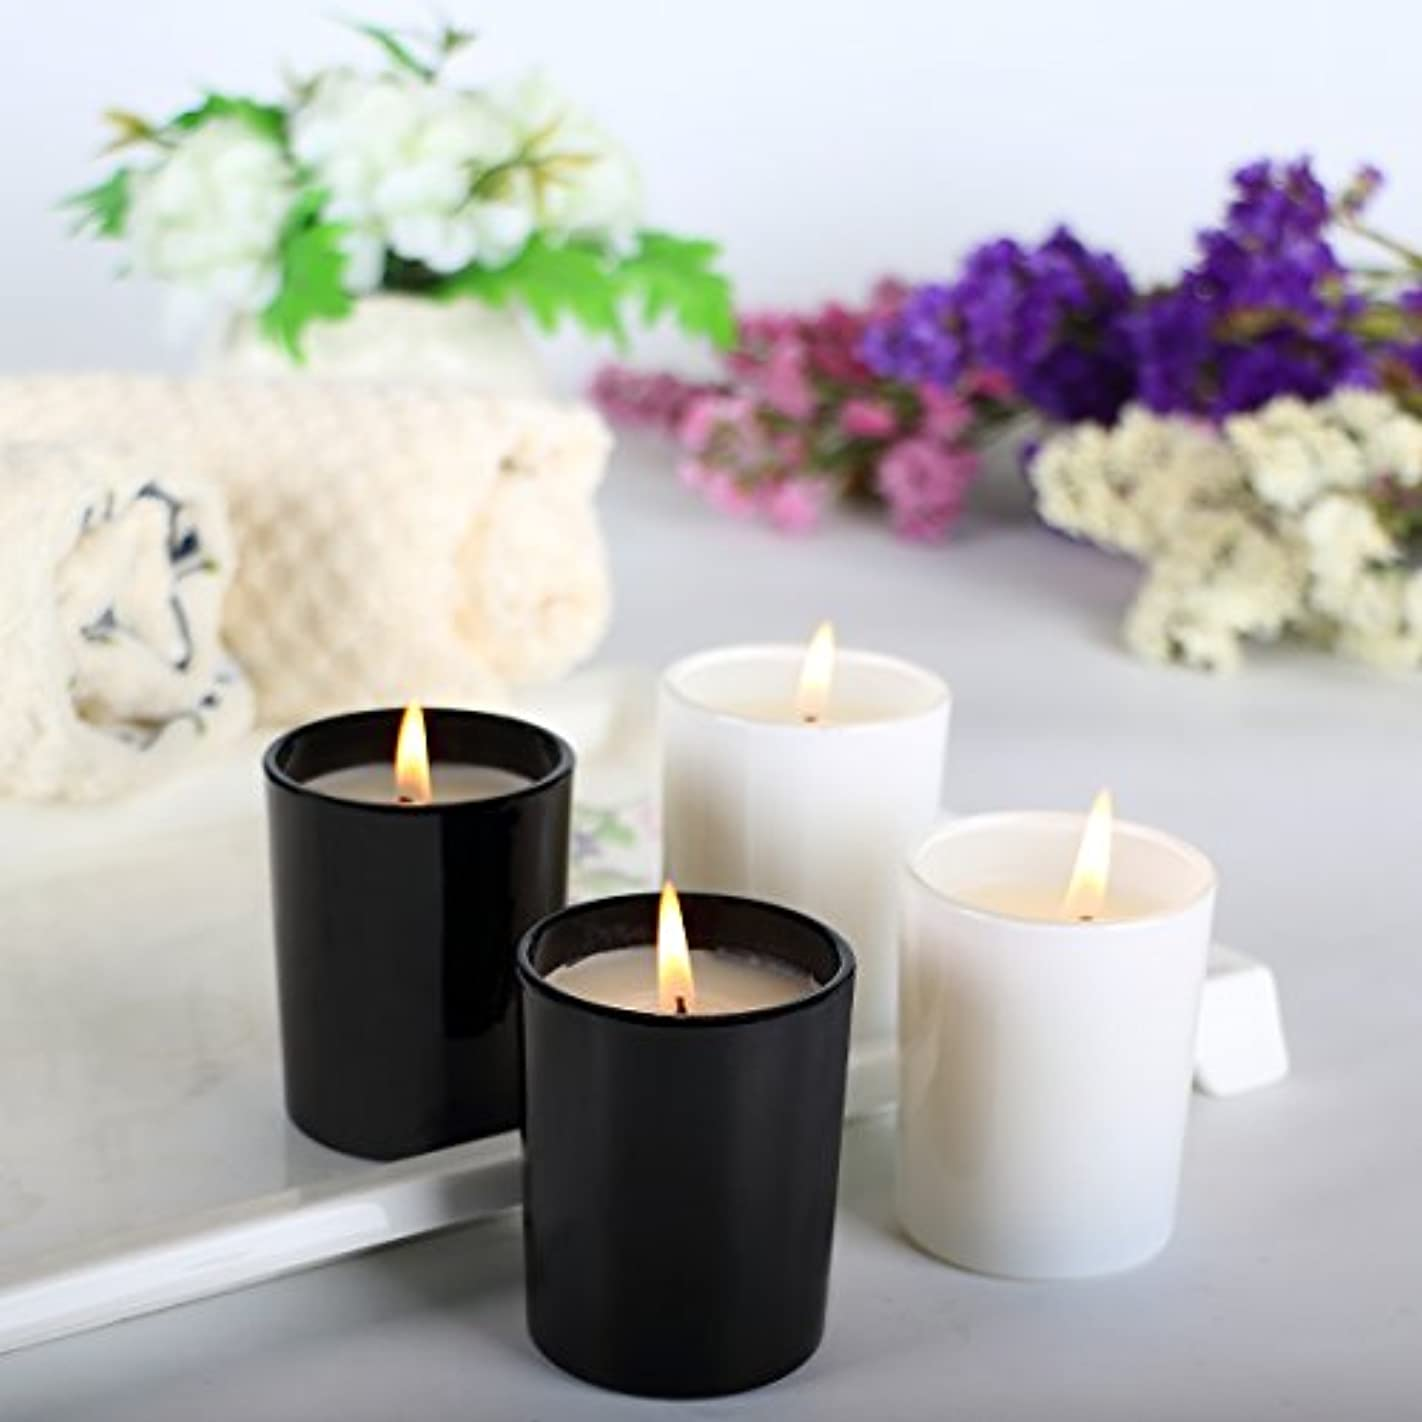 (4 70ml) - Scented Candle, Pack 4 Candles - Includes Gardenia, Lemongrass, Pine, Vanilla Soy Candles for Stress...